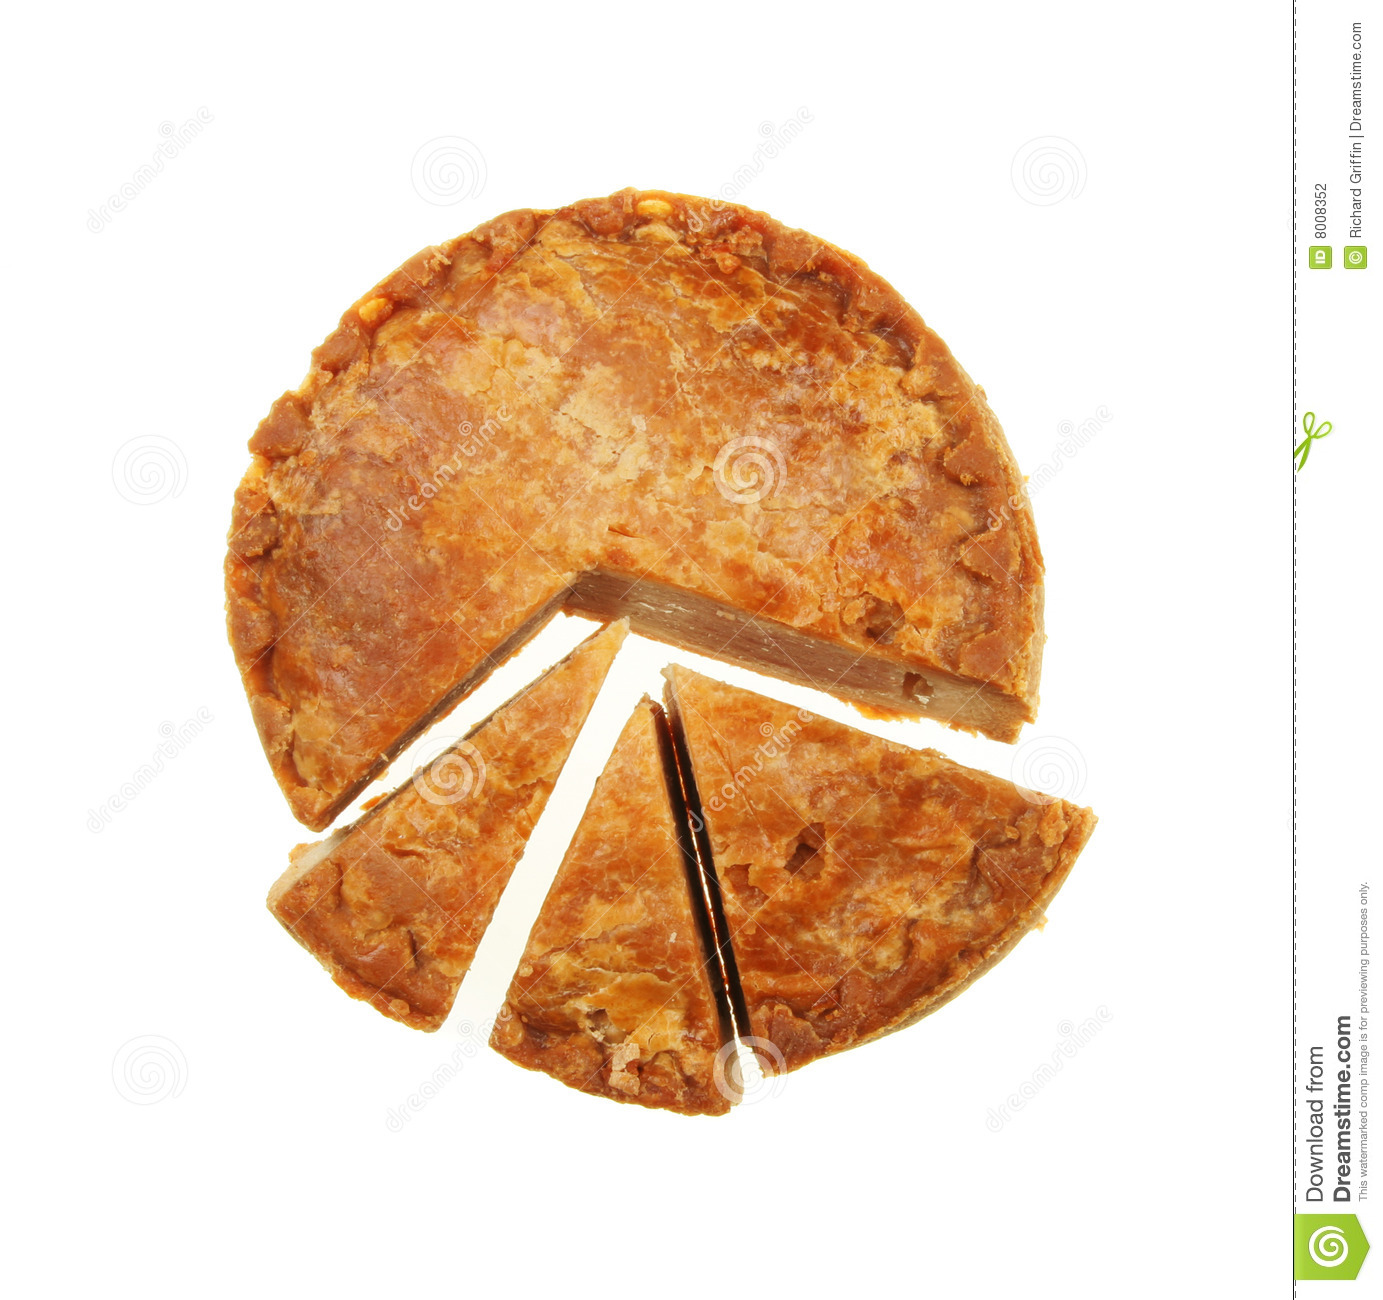 how to draw a pie chart accurately